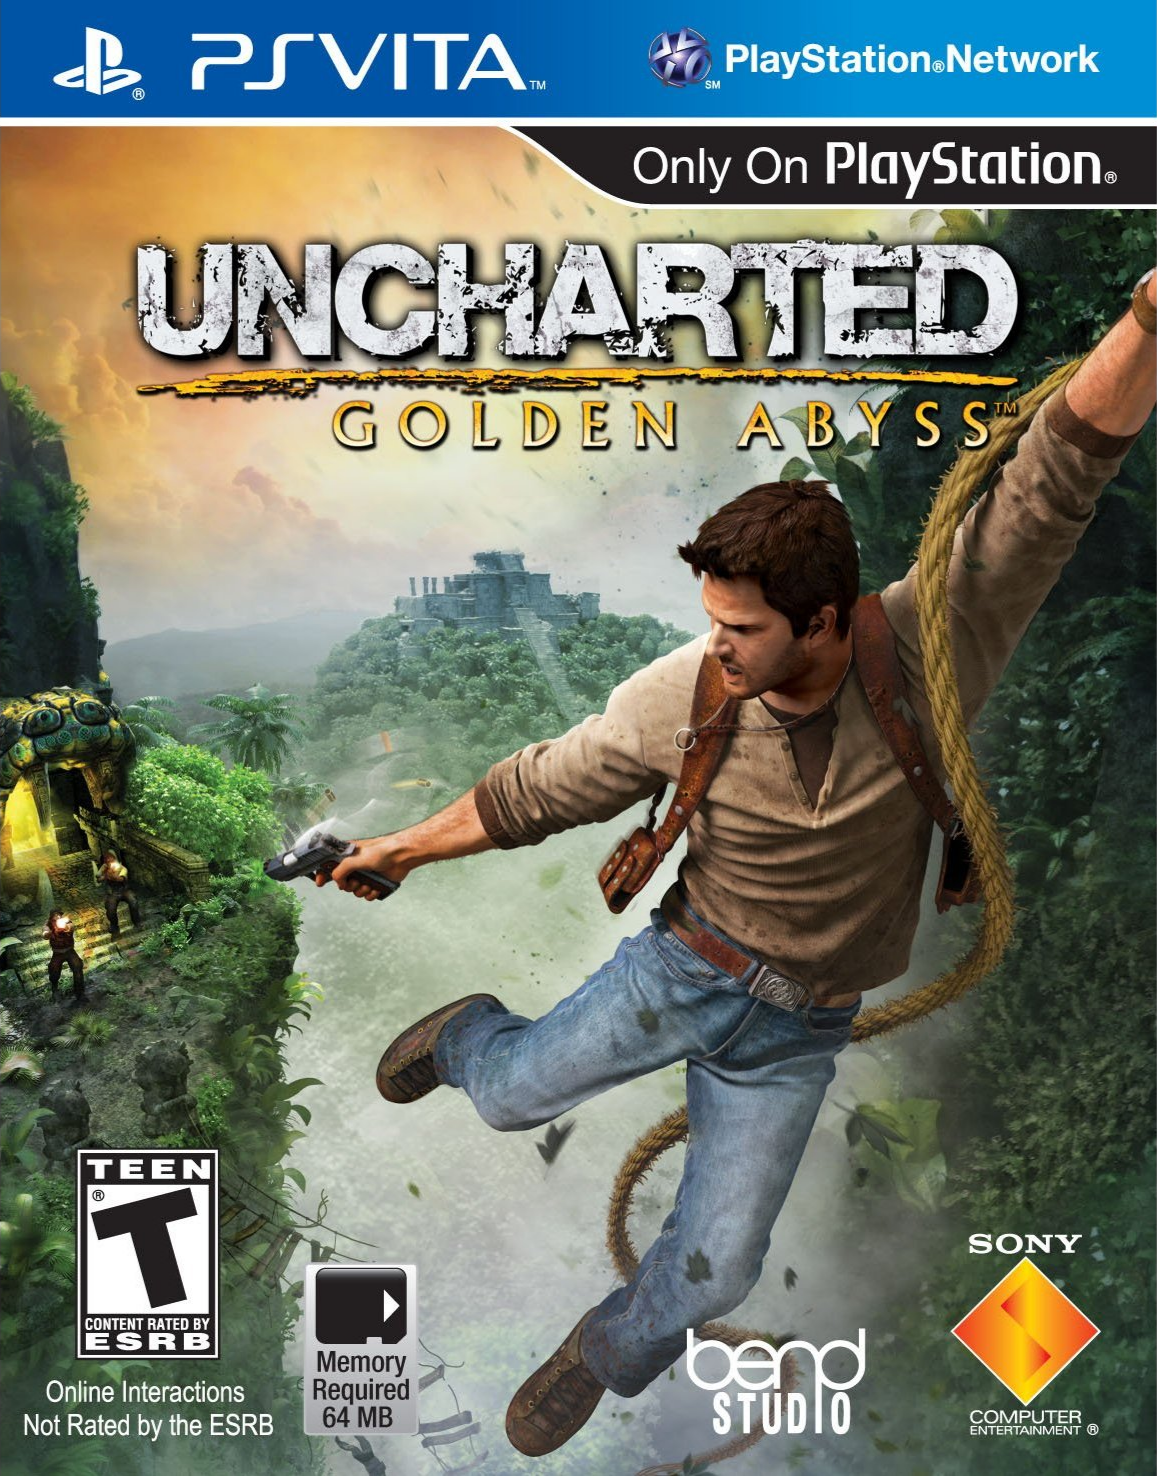 Uncharted Golden Abyss Uncharted Wiki Fandom